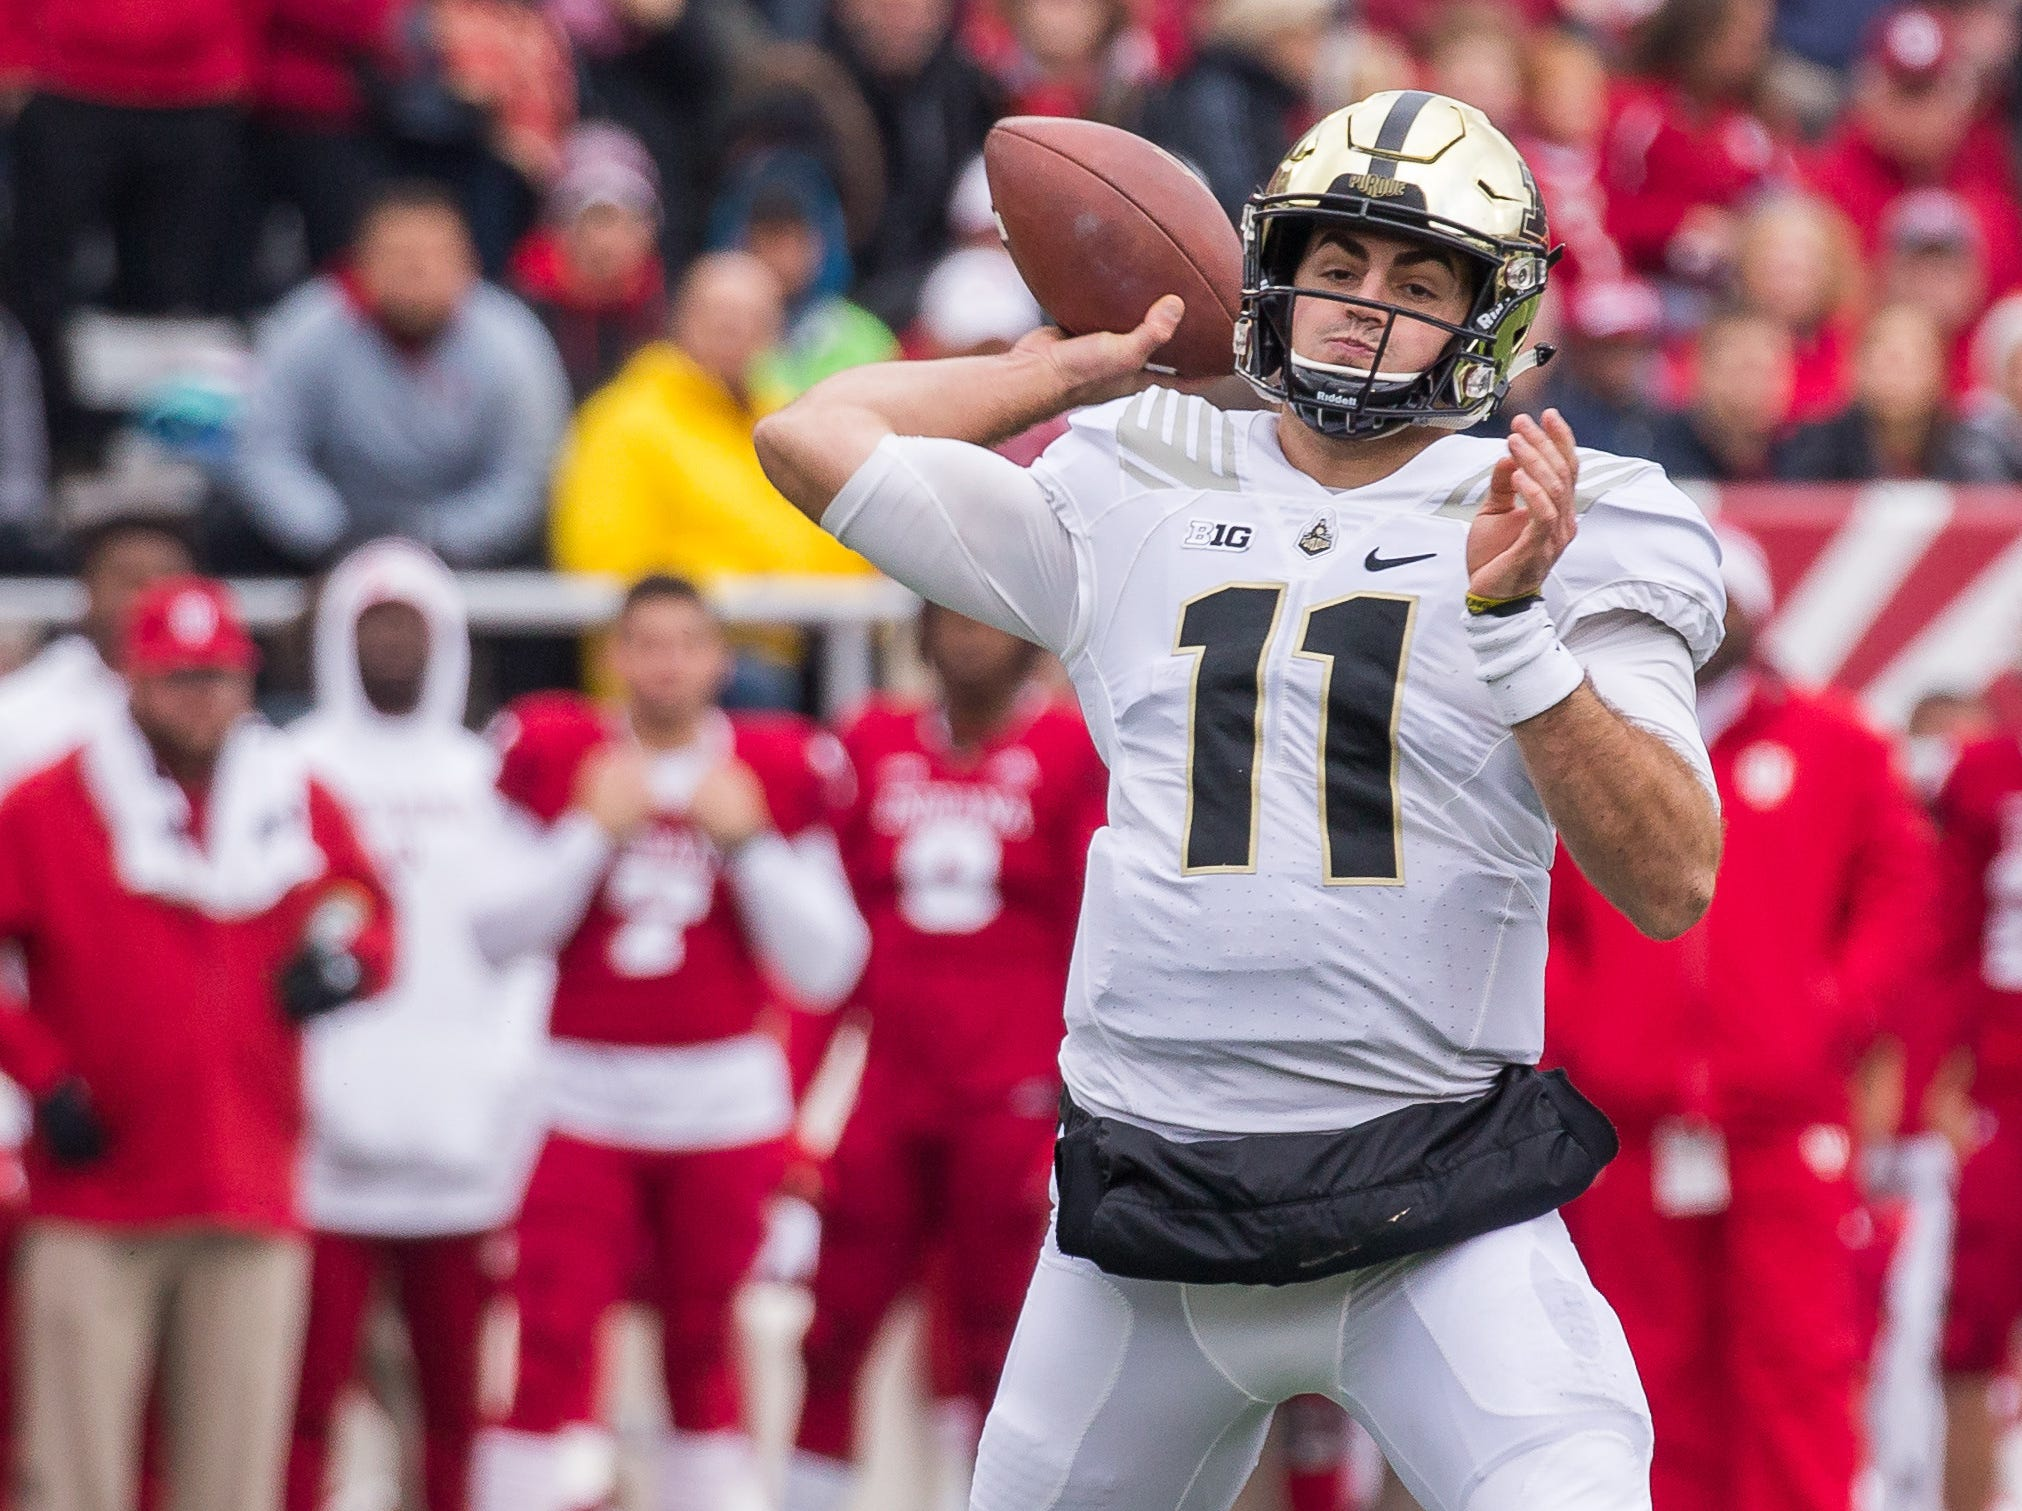 Purdue Boilermakers quarterback David Blough (11) throws the ball in the first quarter against the Indiana Hoosiers at Memorial Stadium.